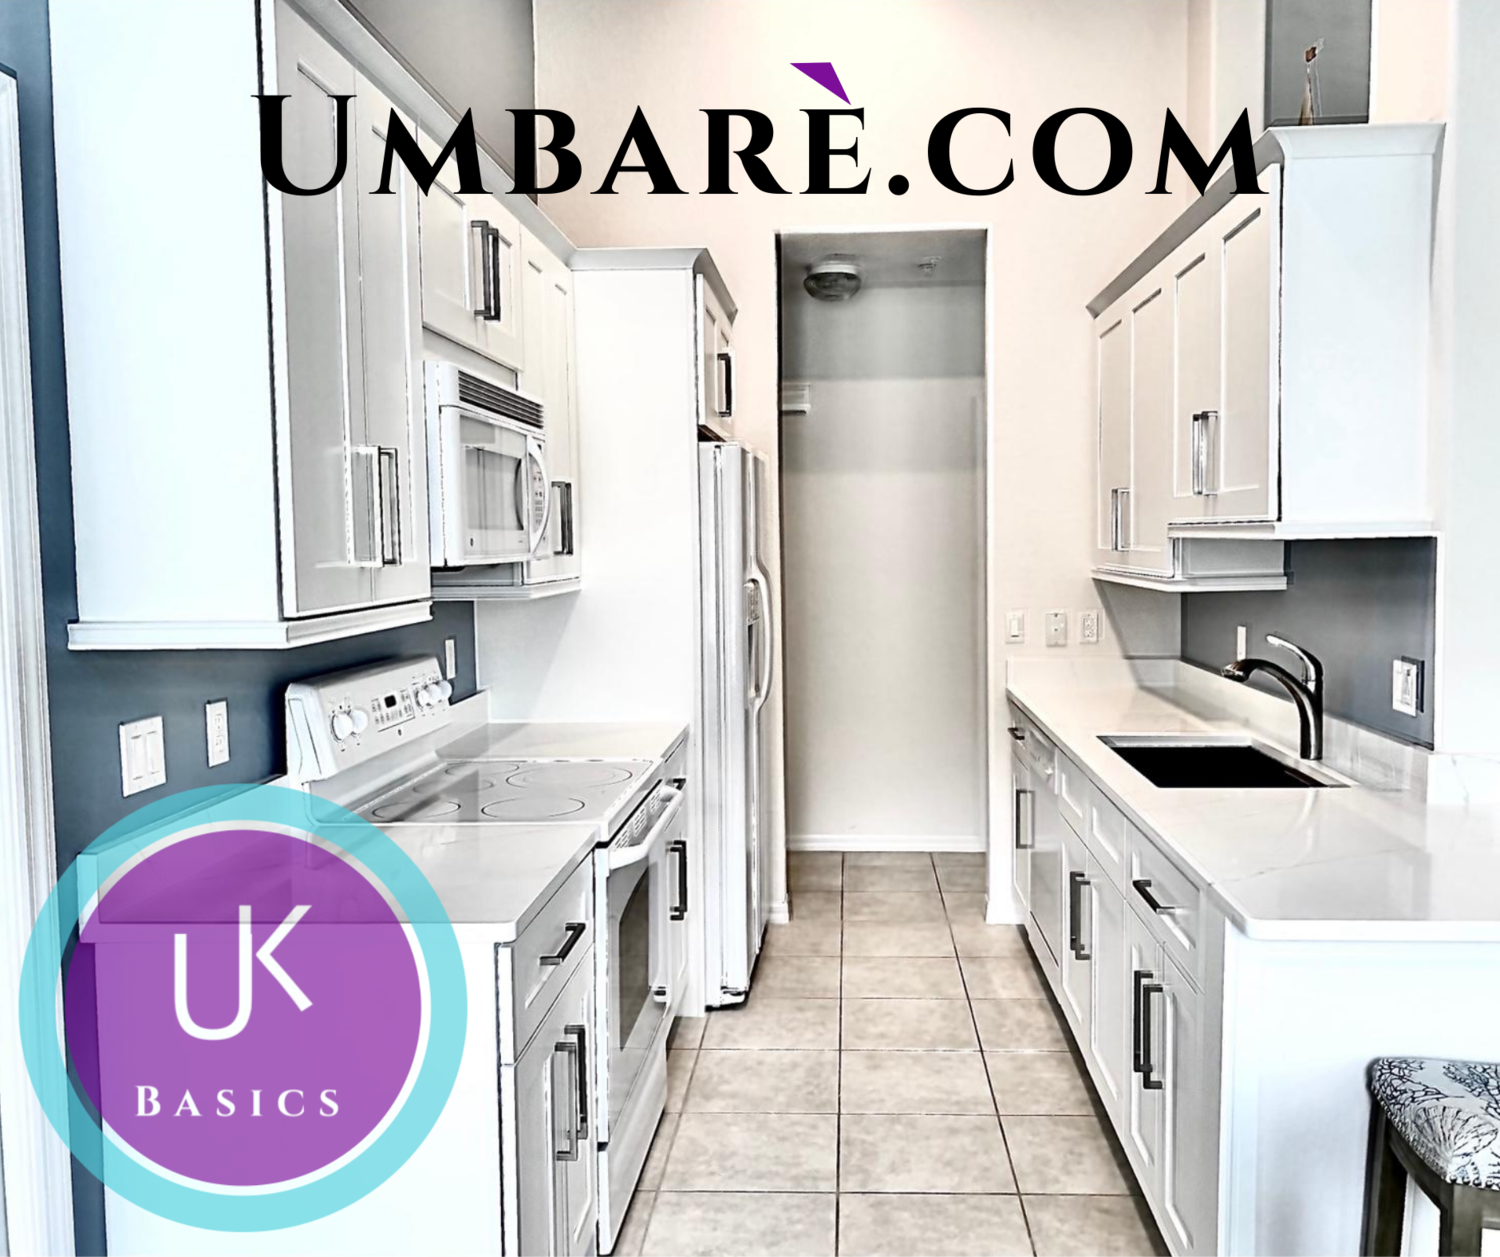 Umbare Basics Kitchen Remodeling Package